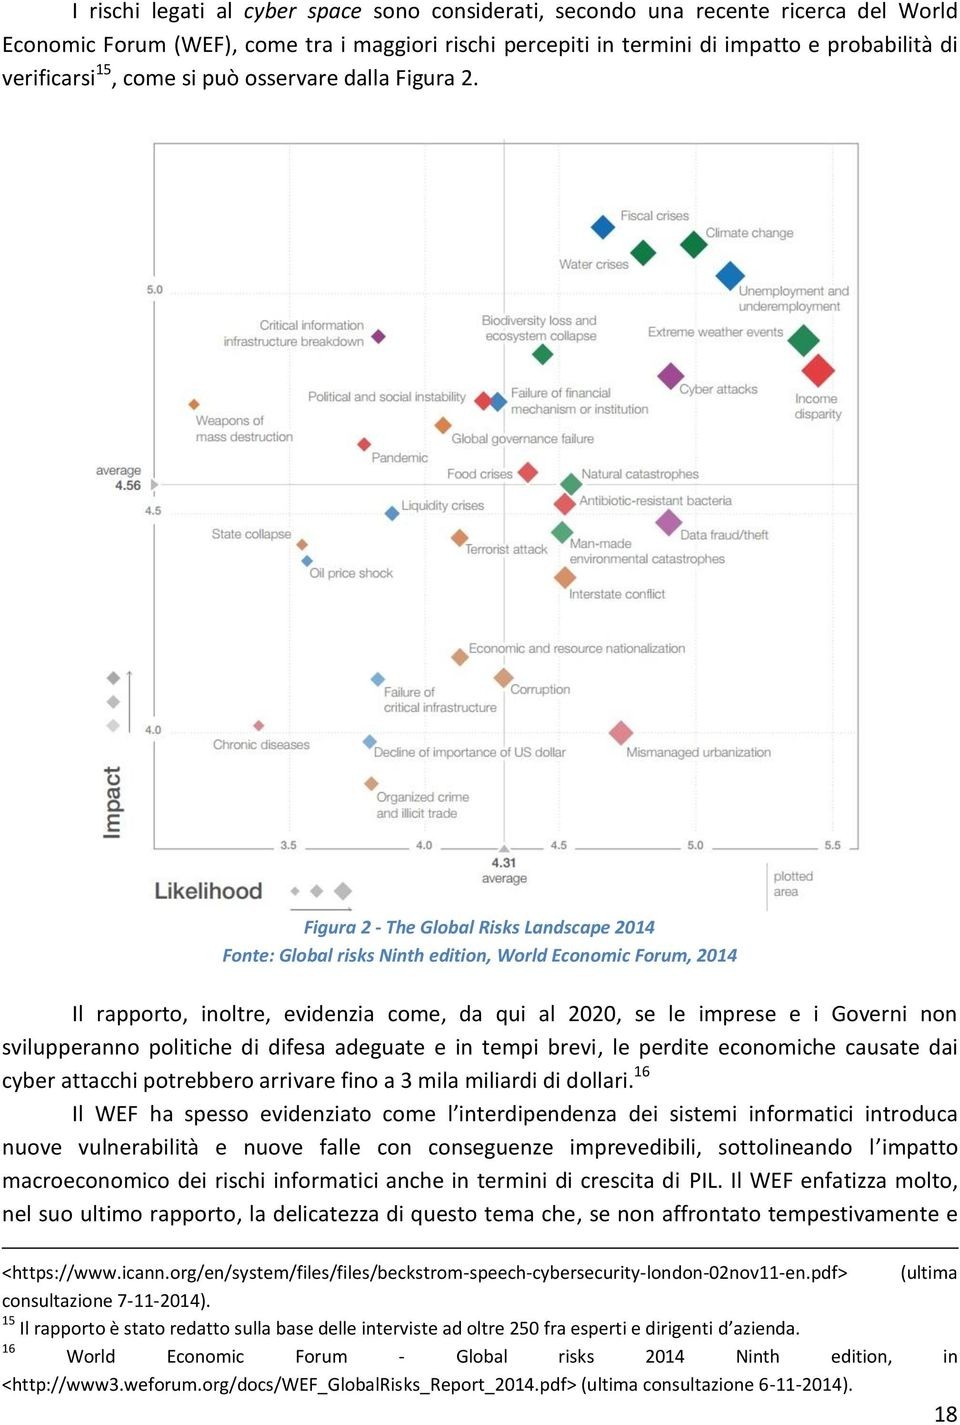 Figura 2 - The Global Risks Landscape 2014 Fonte: Global risks Ninth edition, World Economic Forum, 2014 Il rapporto, inoltre, evidenzia come, da qui al 2020, se le imprese e i Governi non